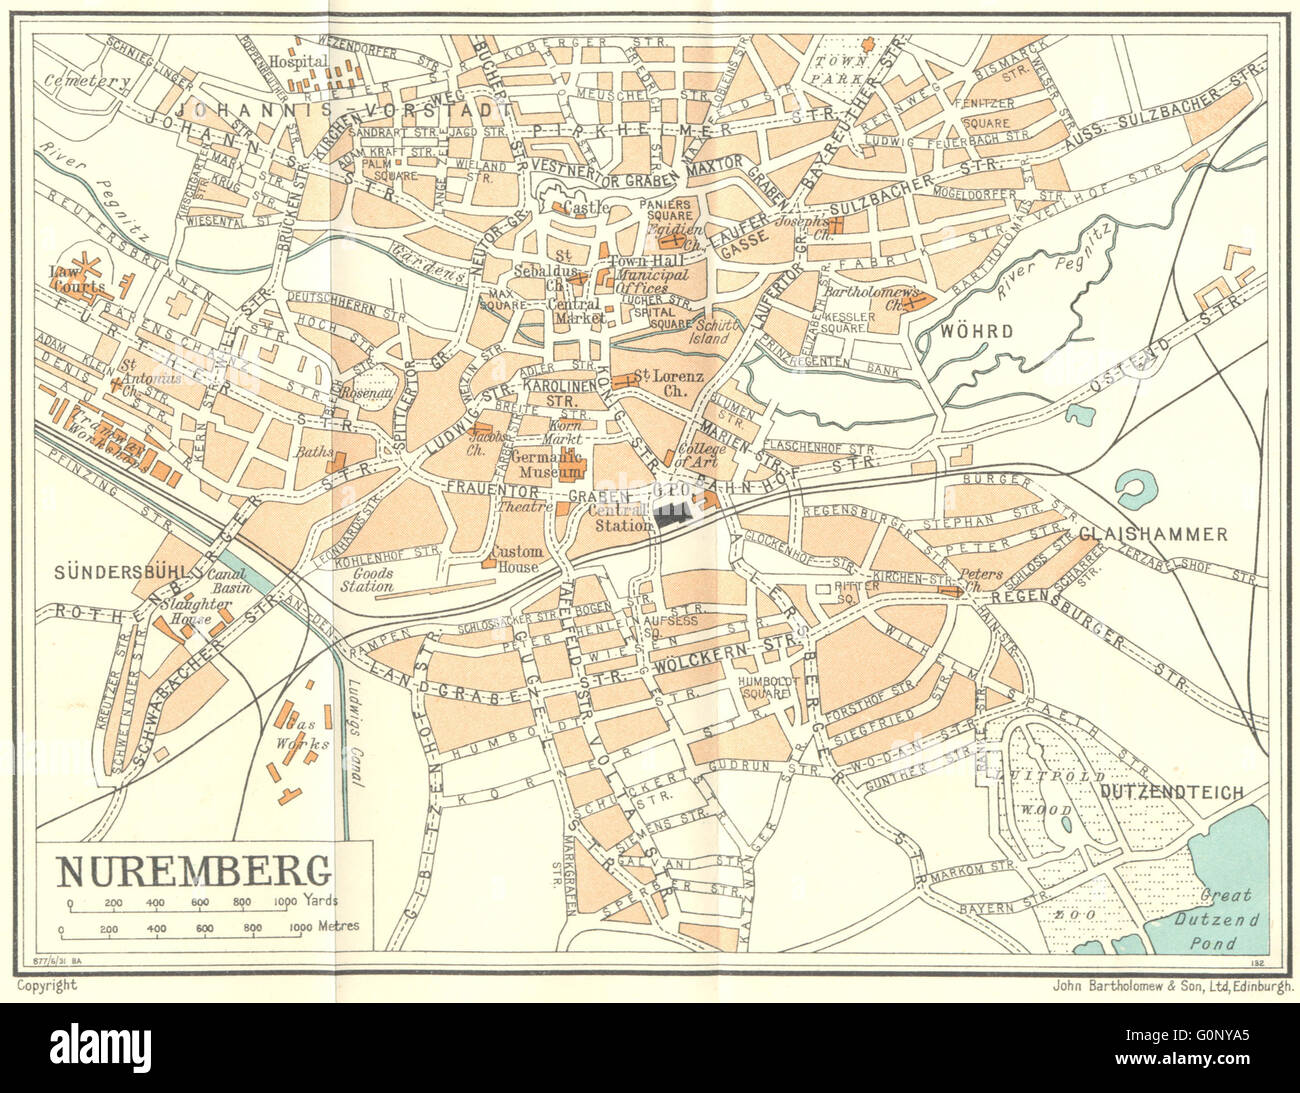 Map Of Germany Nuremberg.Germany Nuremberg 1931 Vintage Map Stock Photo 103744653 Alamy